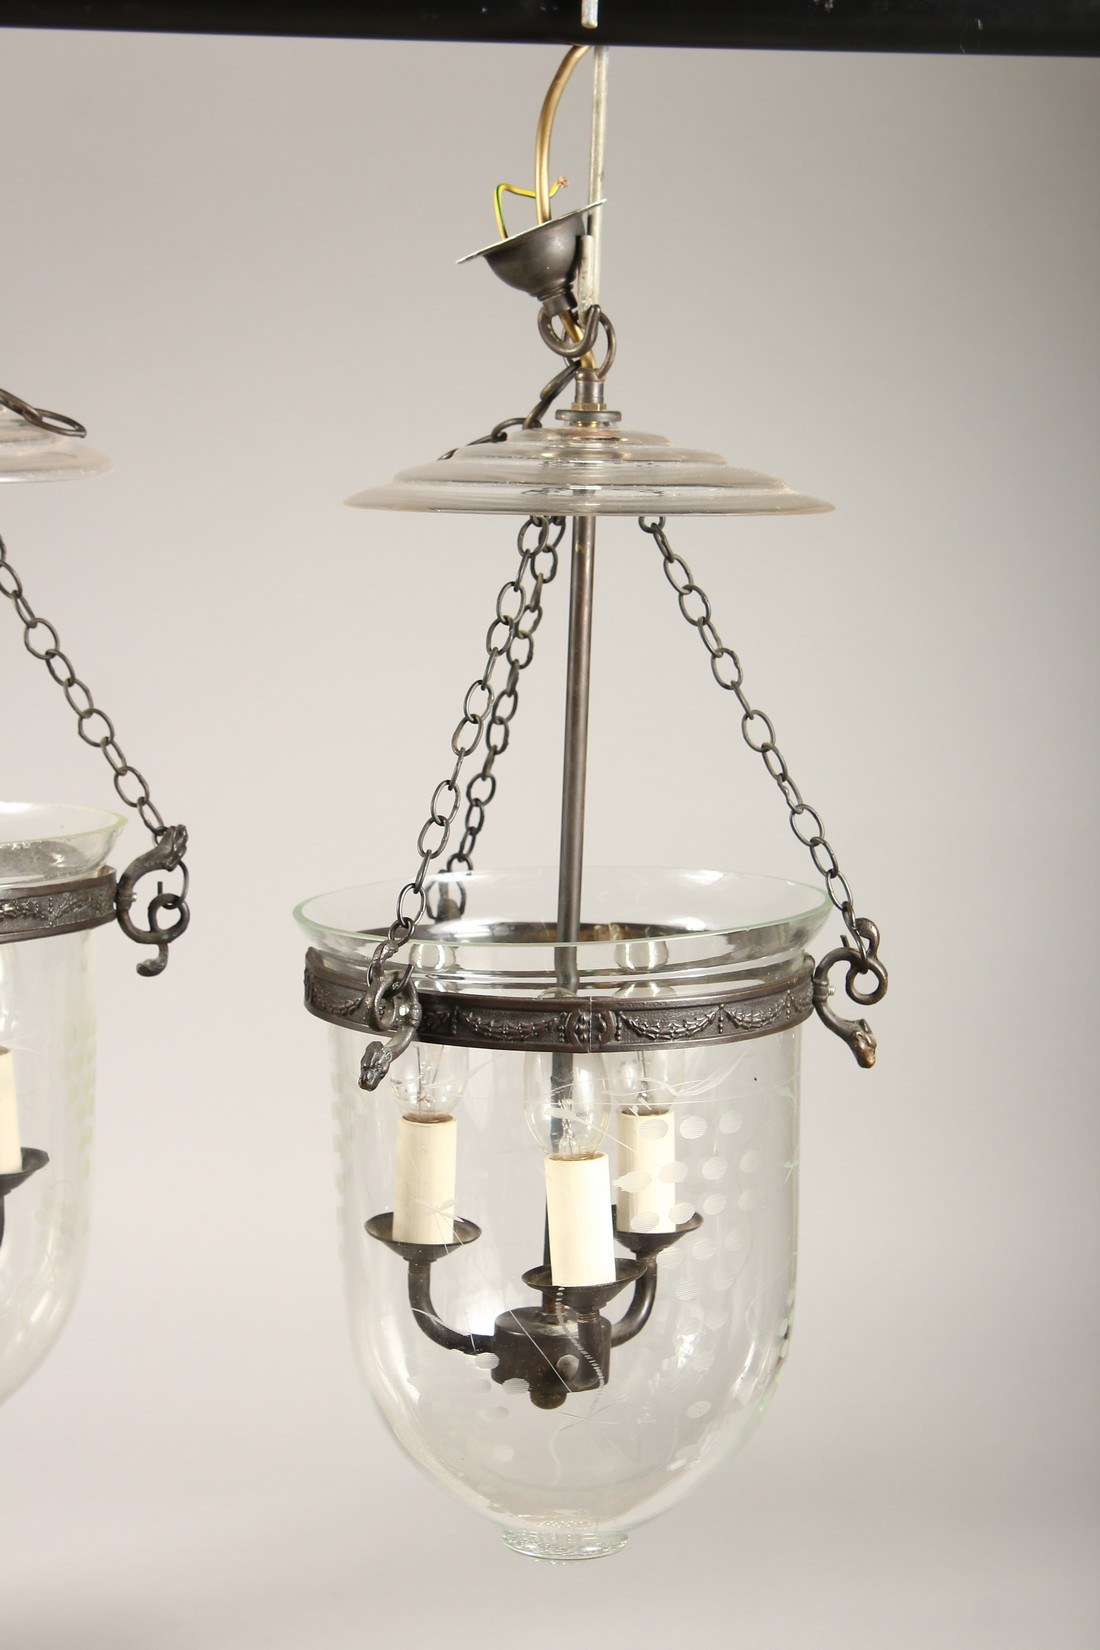 A SET OF THREE ETCHED GLASS AND METAL THREE LIGHT HANGING LANTERNS 20ins high. - Image 5 of 6